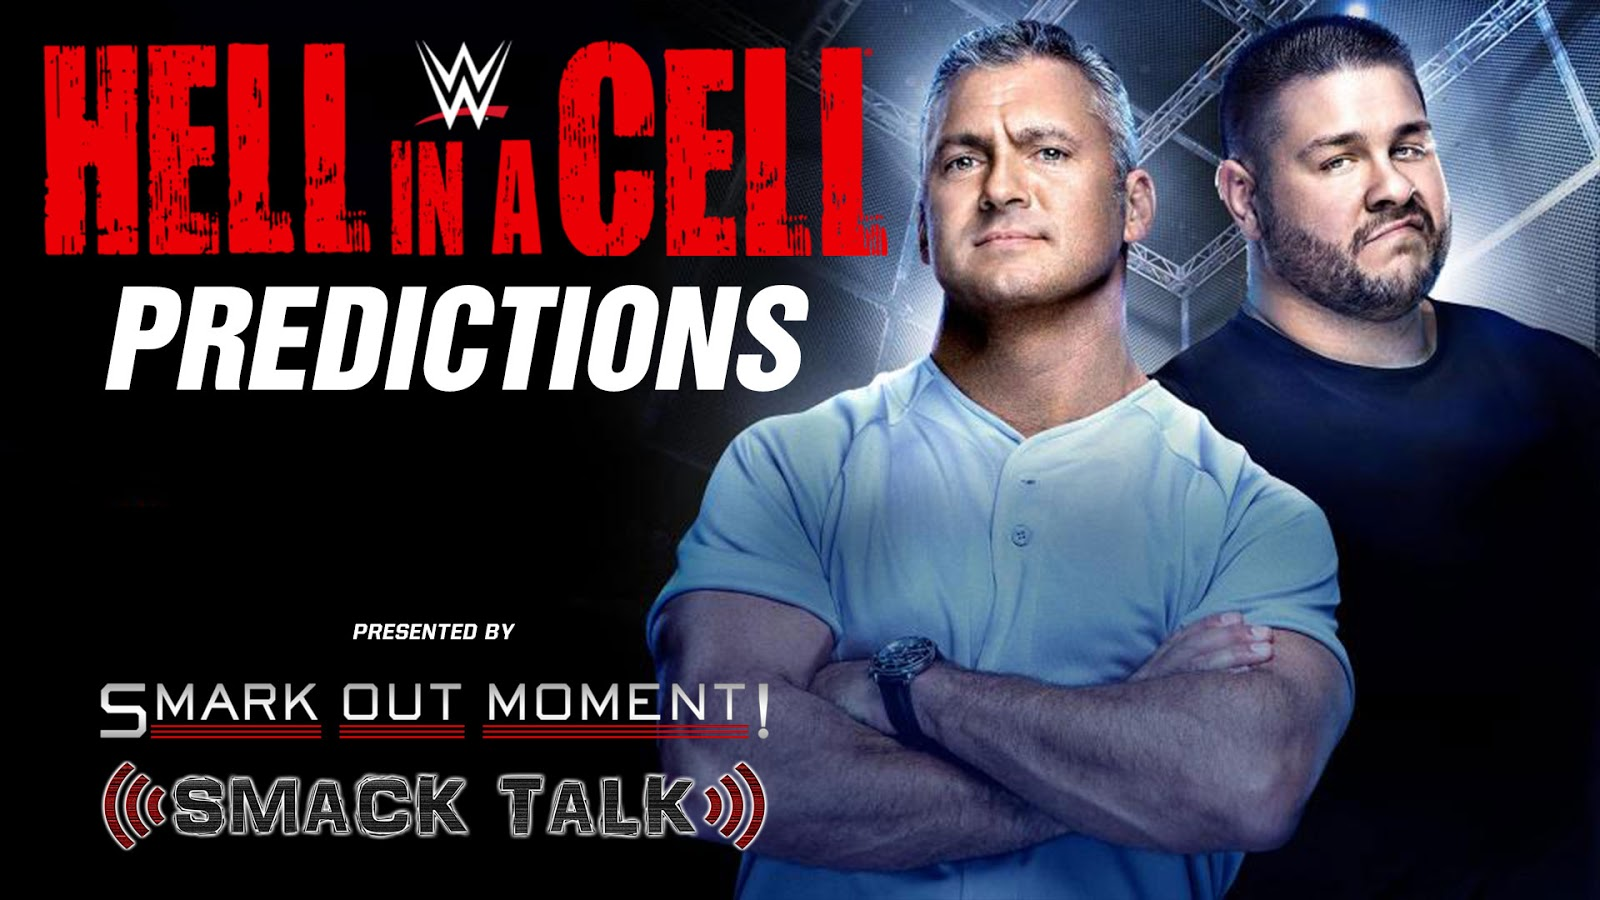 WWE Hell in a Cell 2017 spoilers podcast